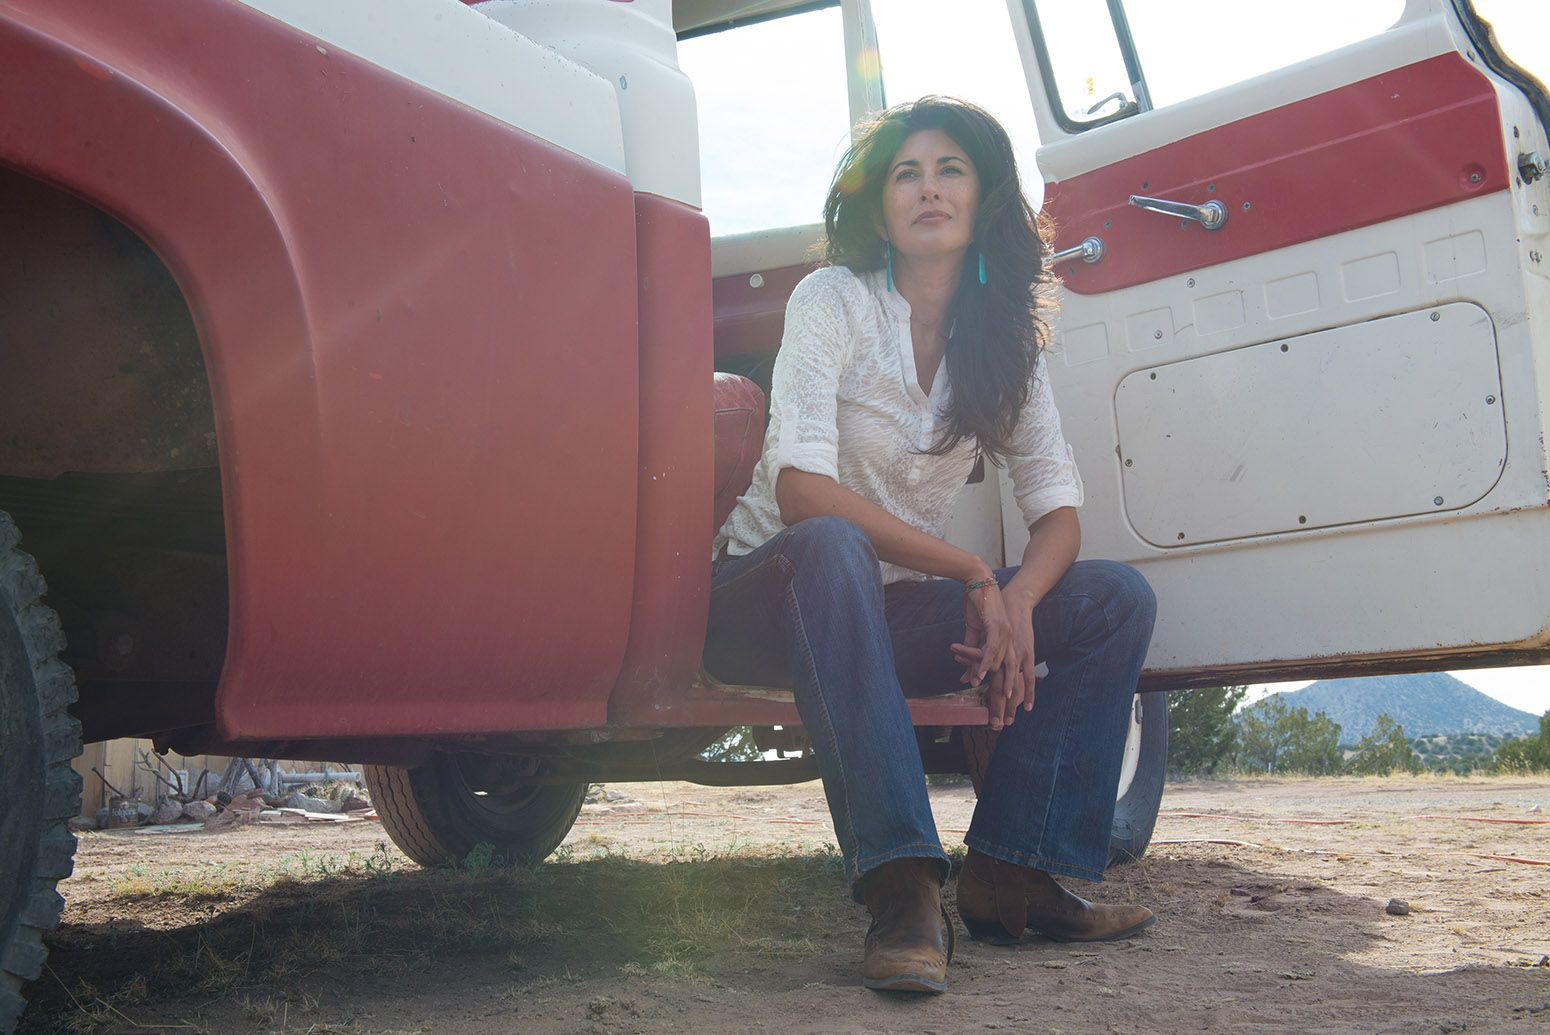 Brunette woman sitting in old red and white truck